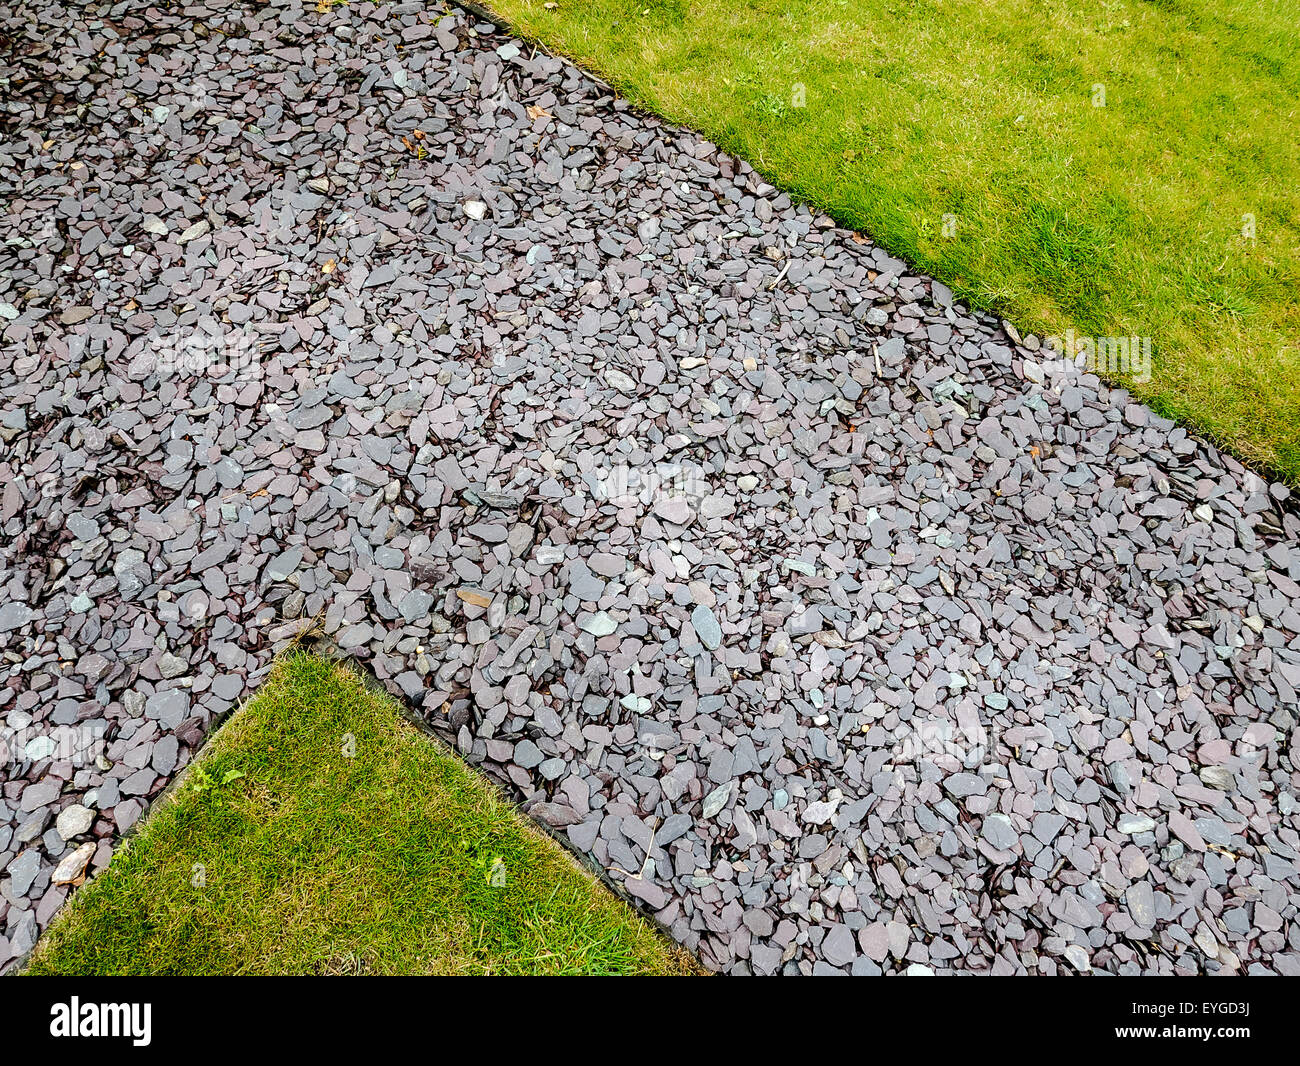 Path between lawns with shale surface showing contrasting surfaces - Stock Image